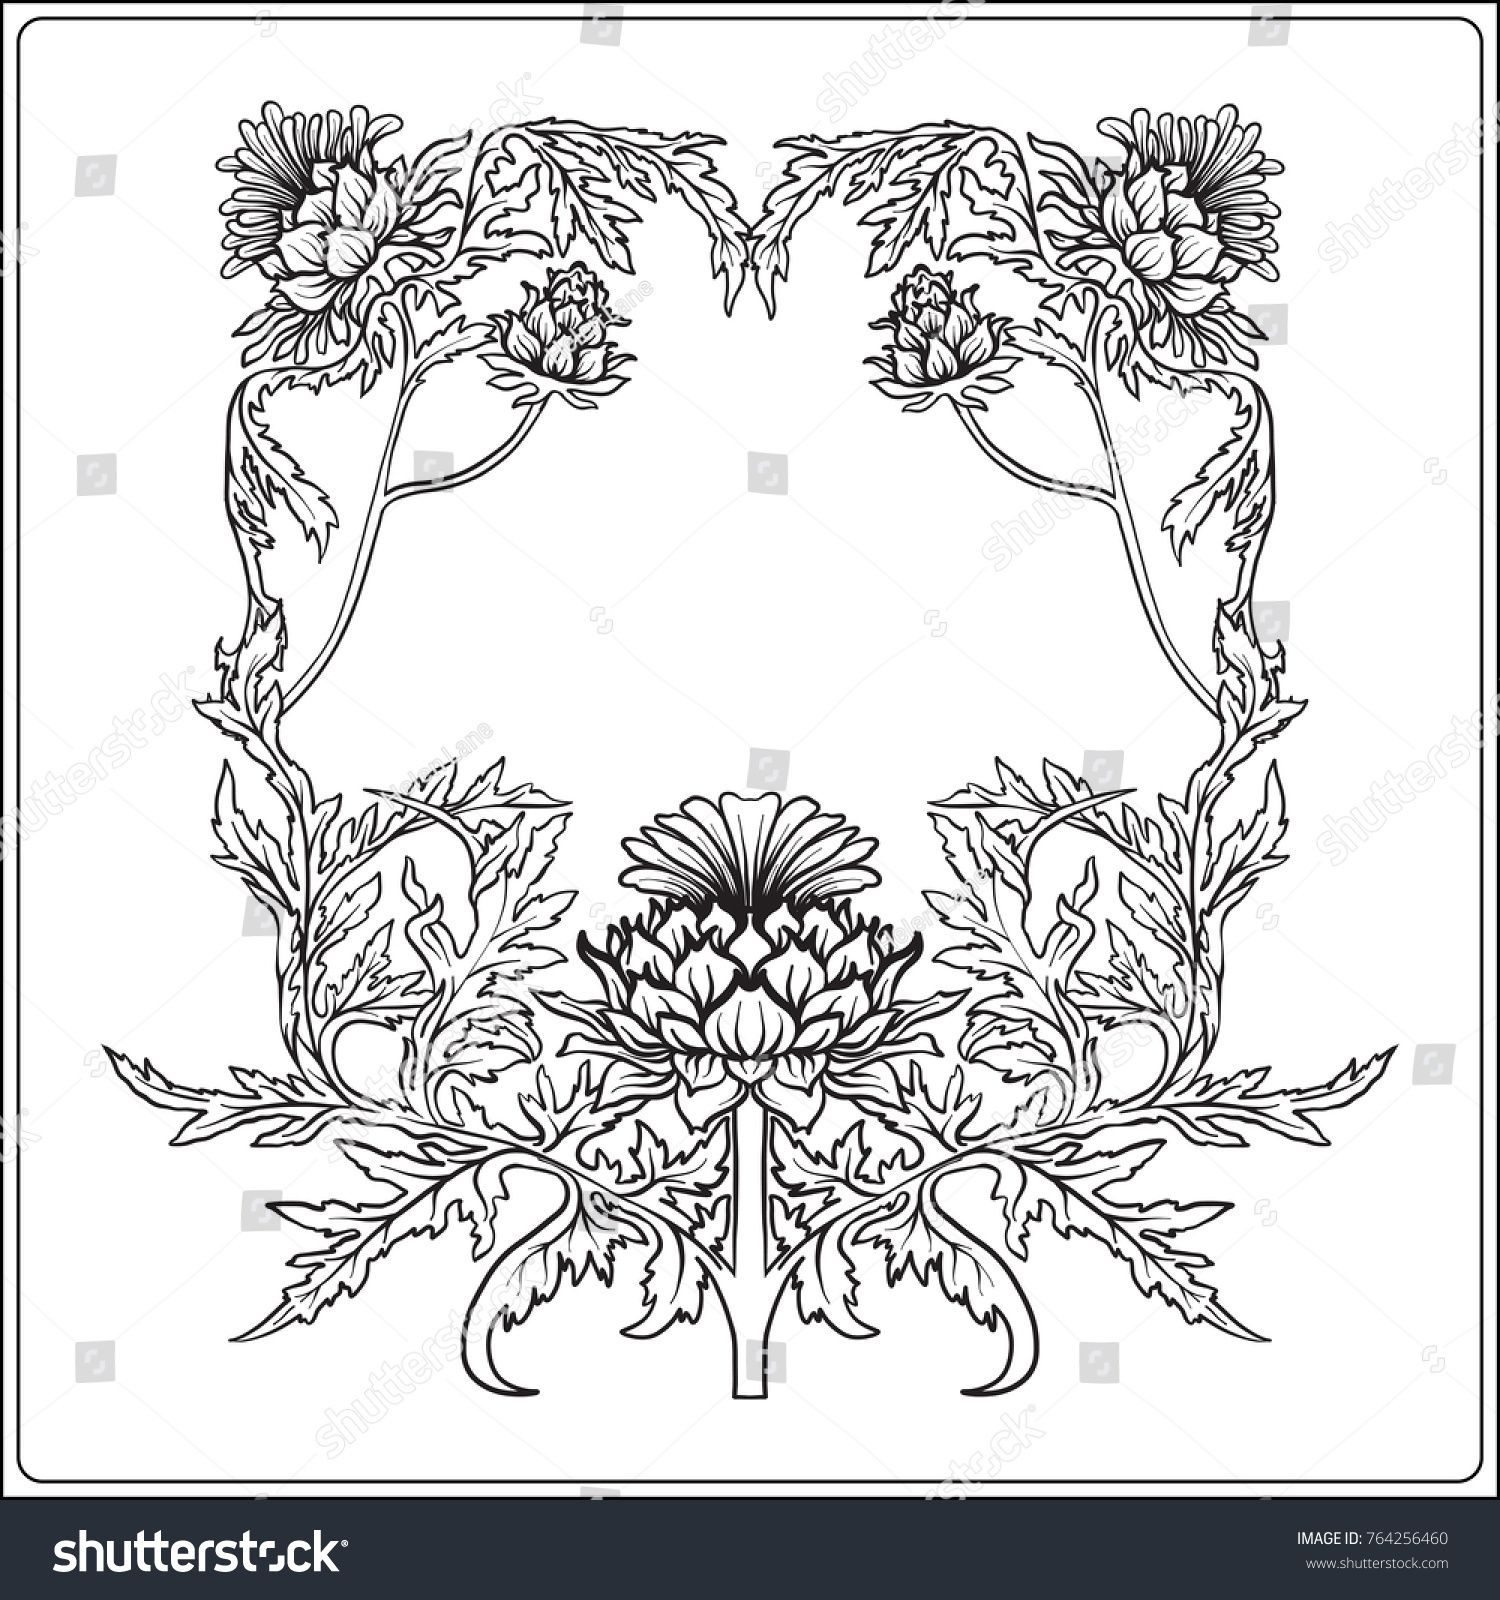 Frame in art nouveau style with thistle. Outline drawing.